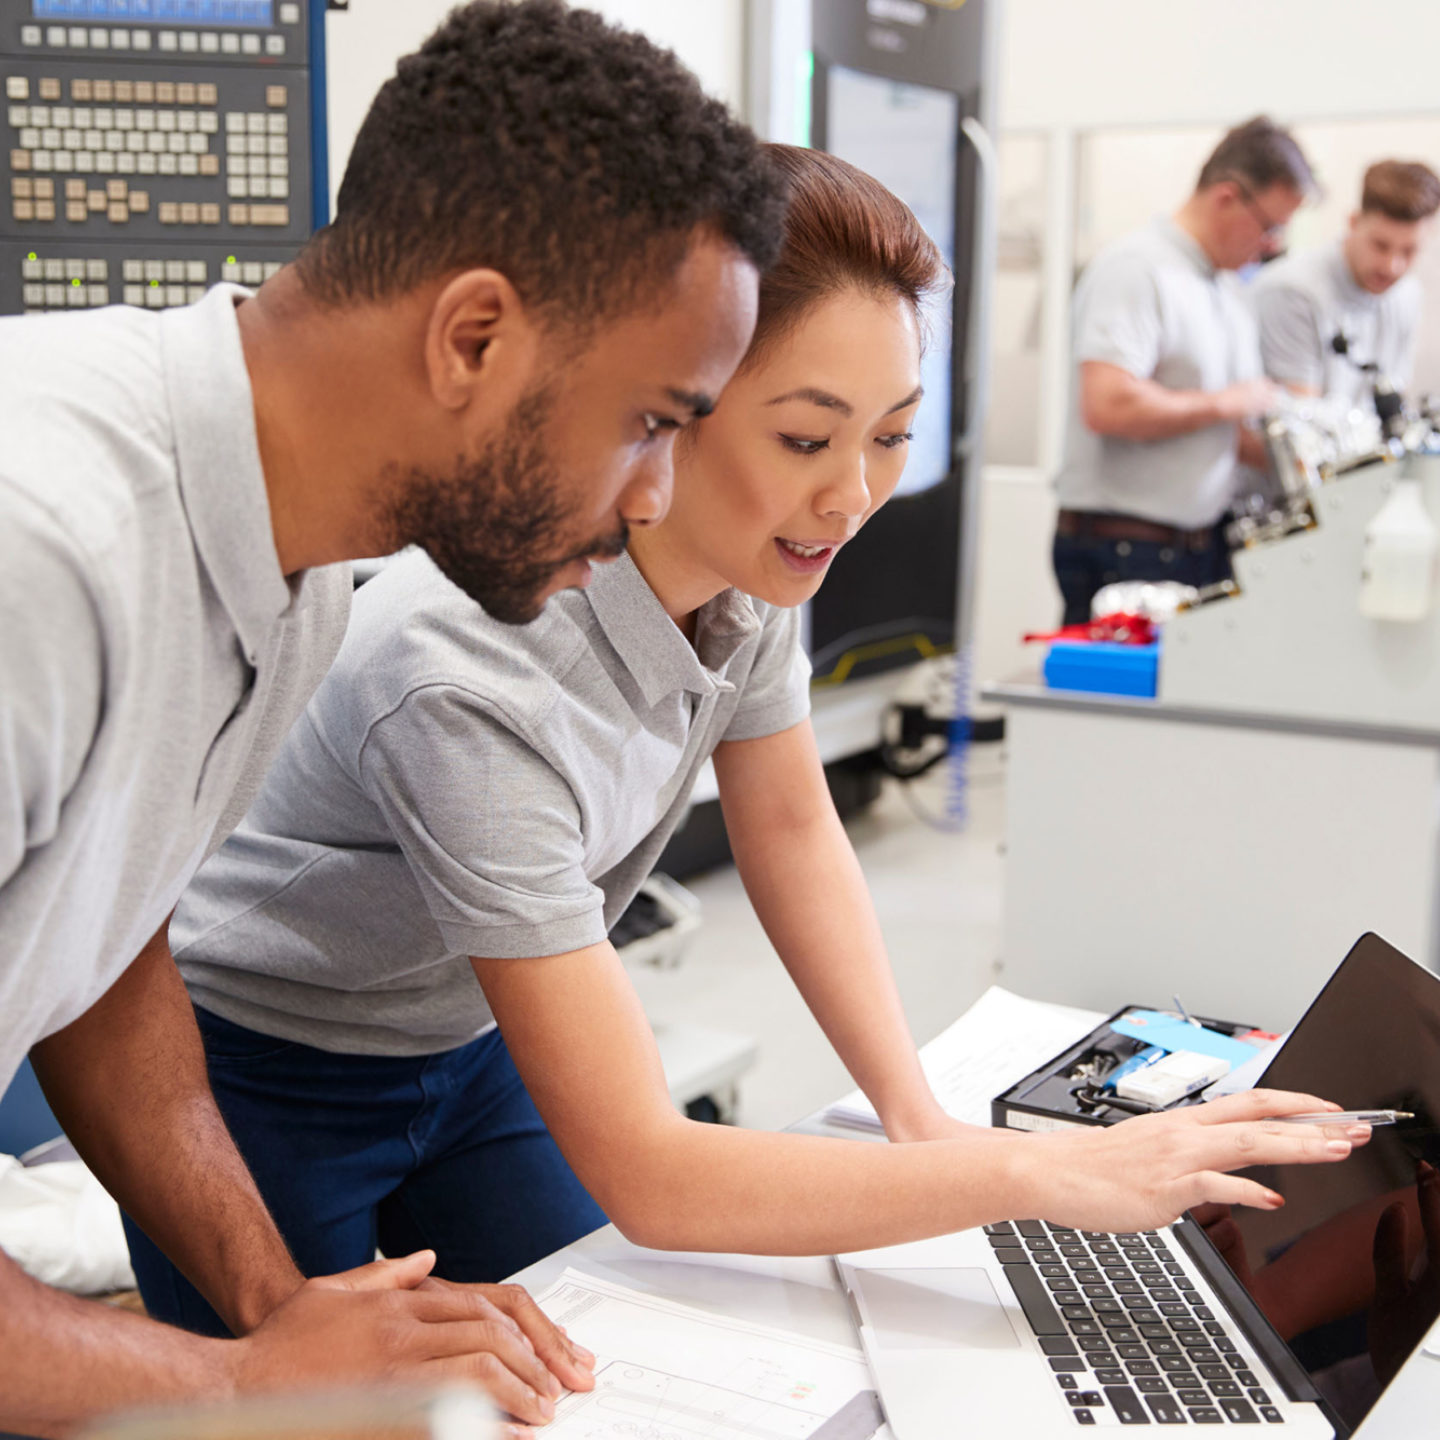 Man and woman working together pointing at a laptop